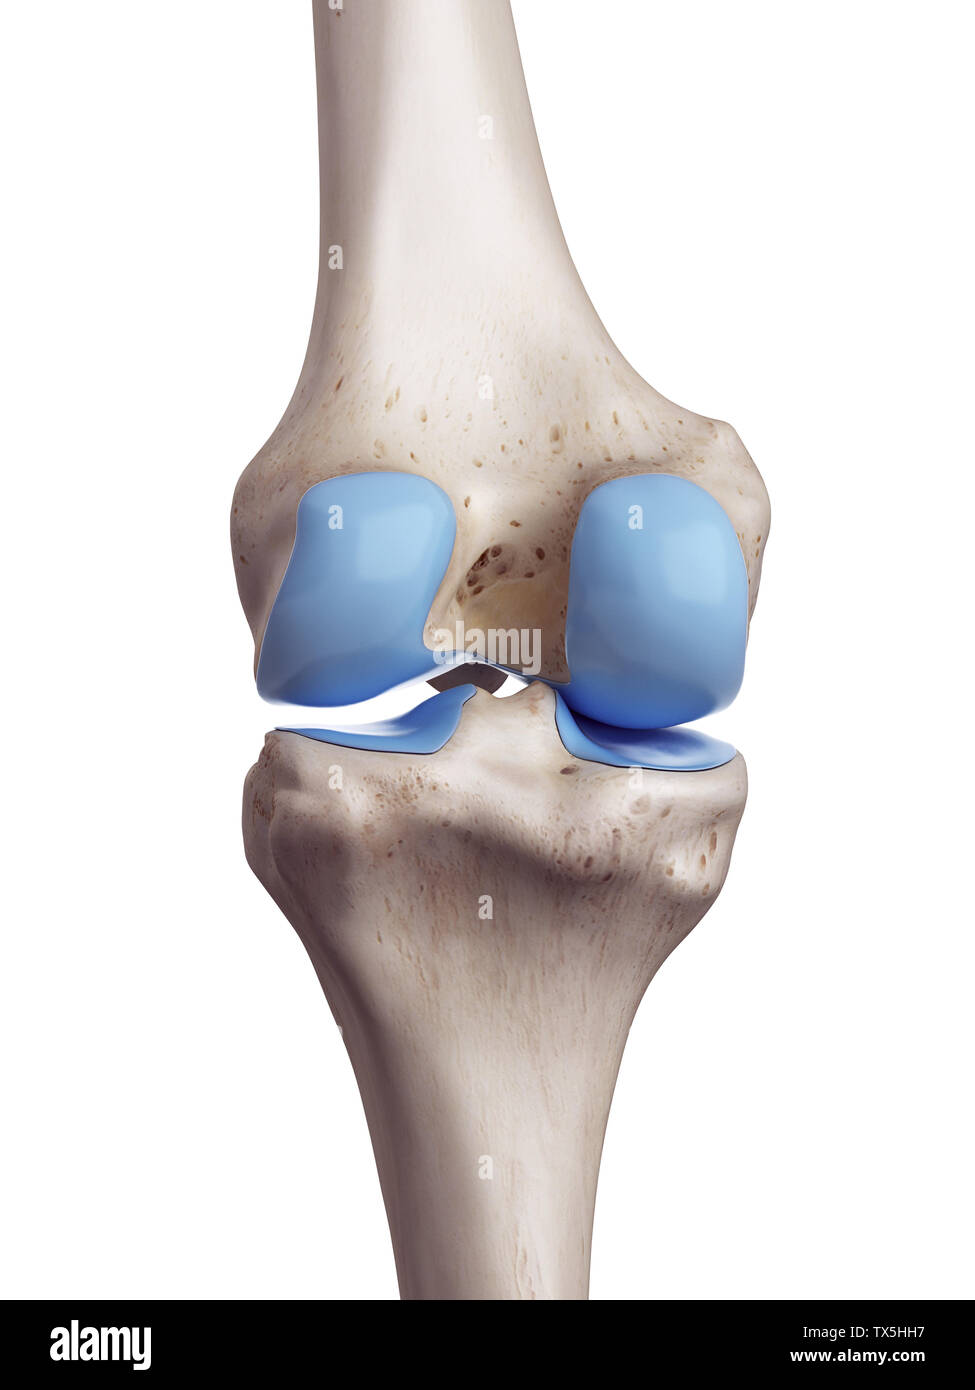 3d rendered, medically accurate illustration of the knee cartilage - Stock Image